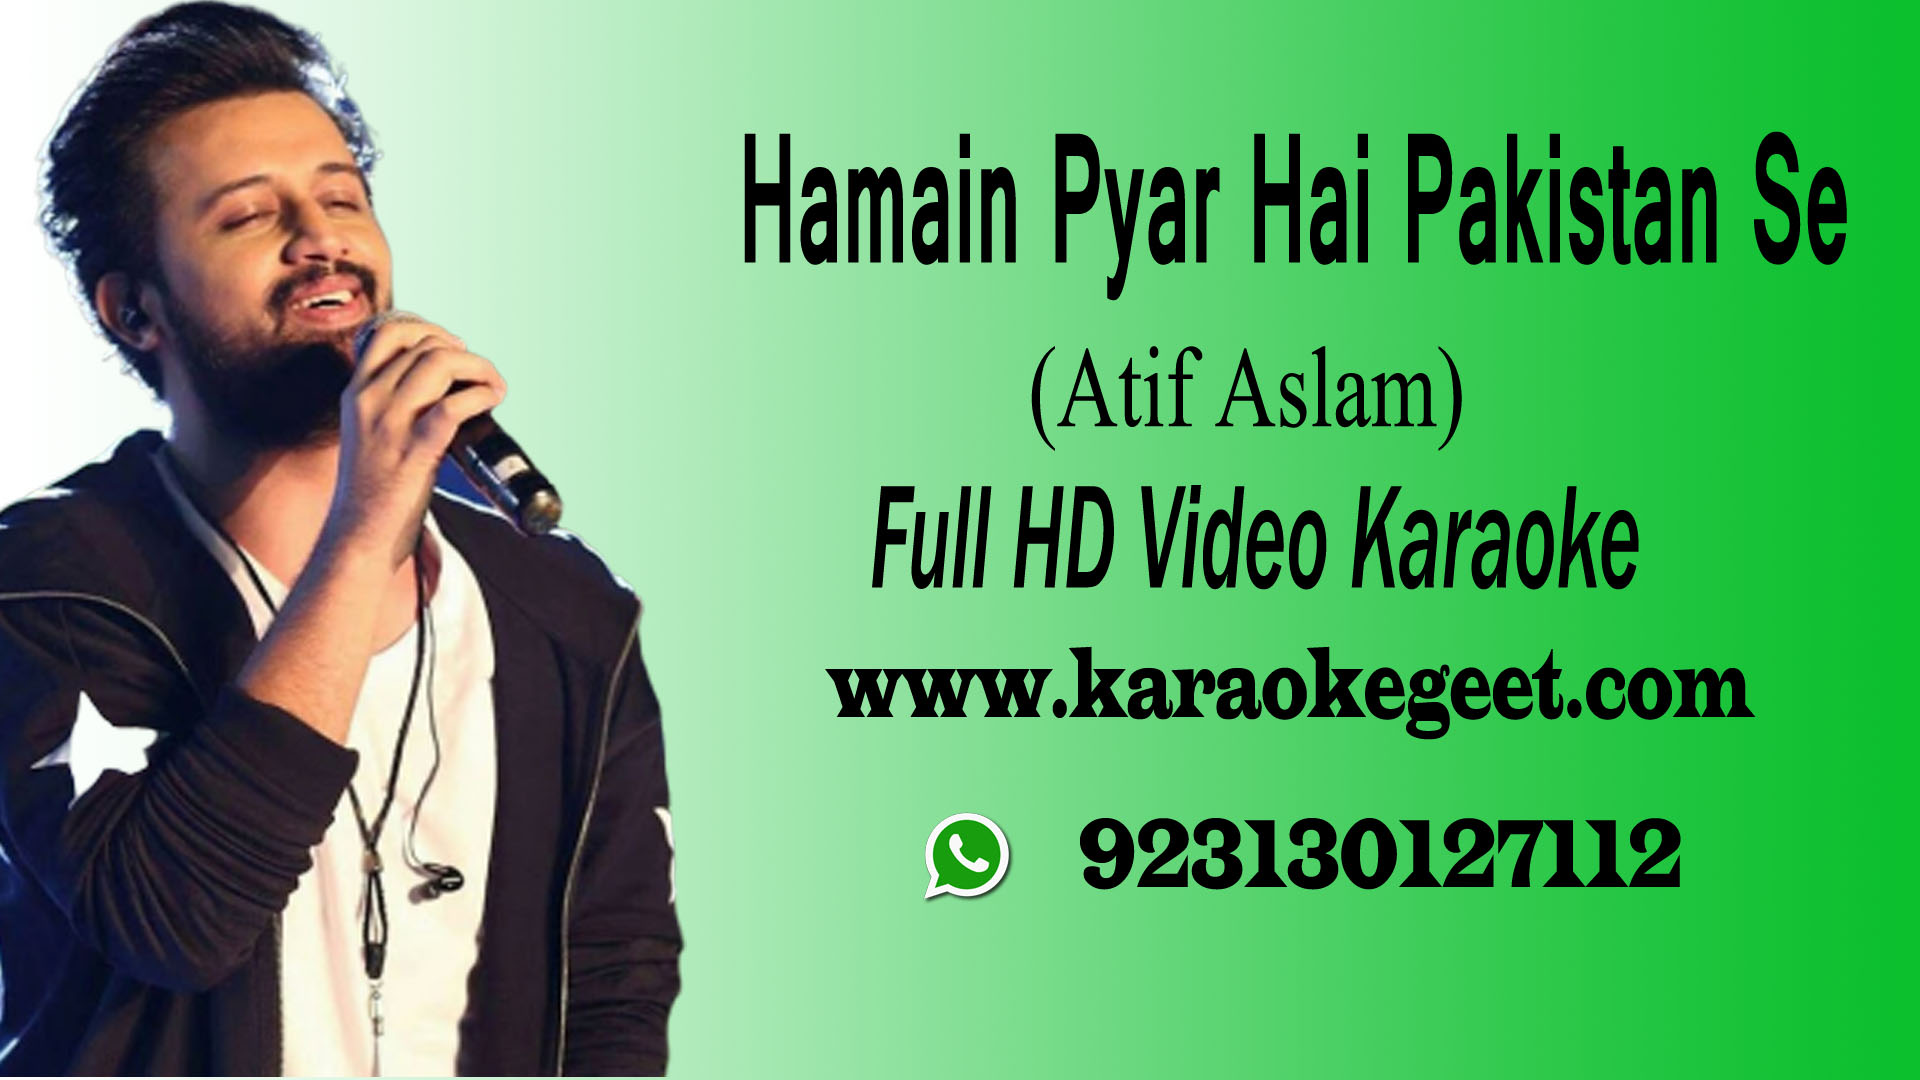 Hamain pyar hai Pakistan Video Karaoke